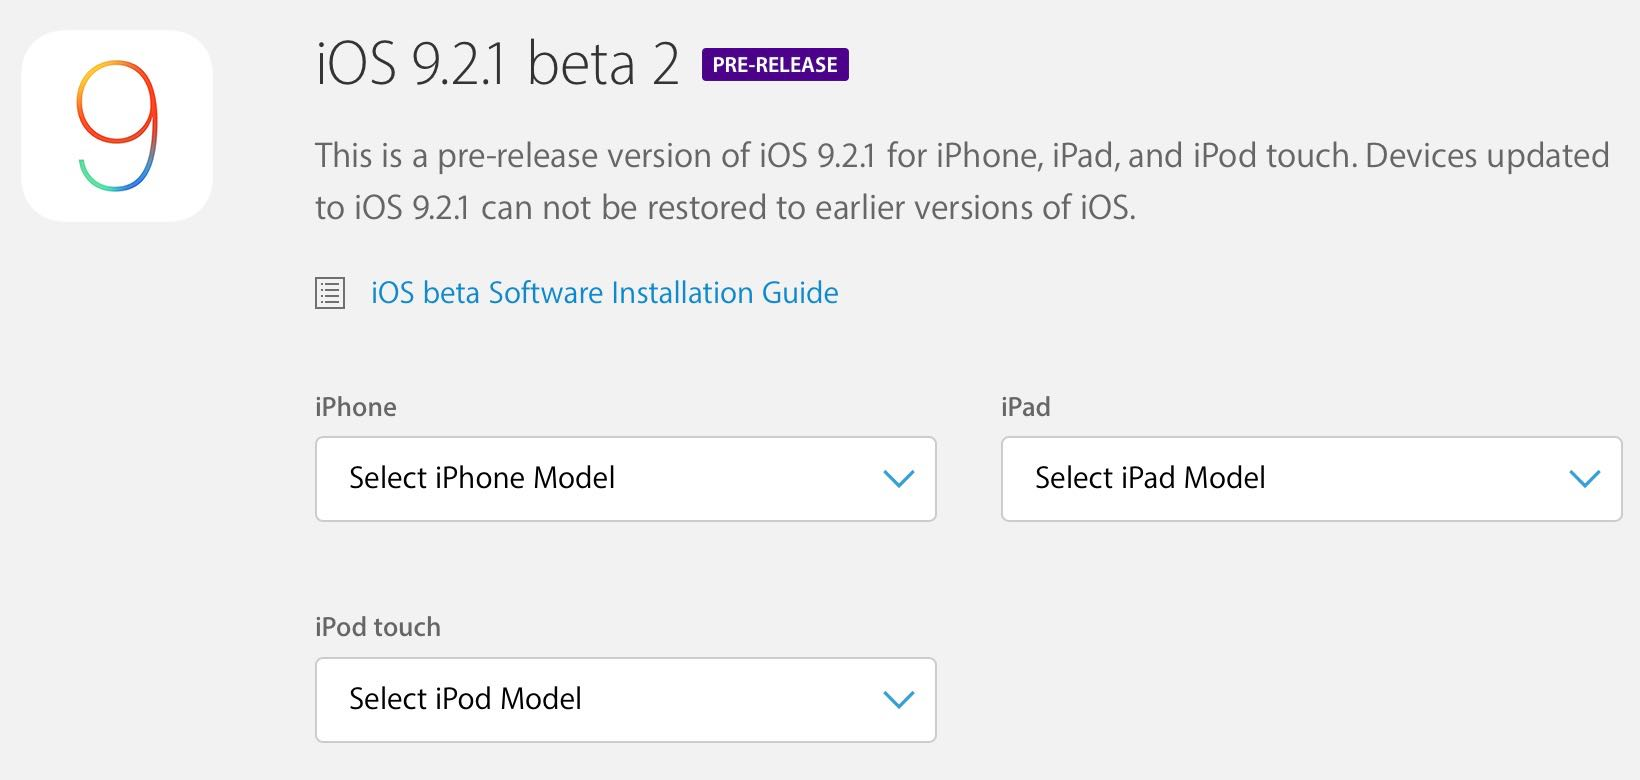 iOS 9.2.1 beta 2 update